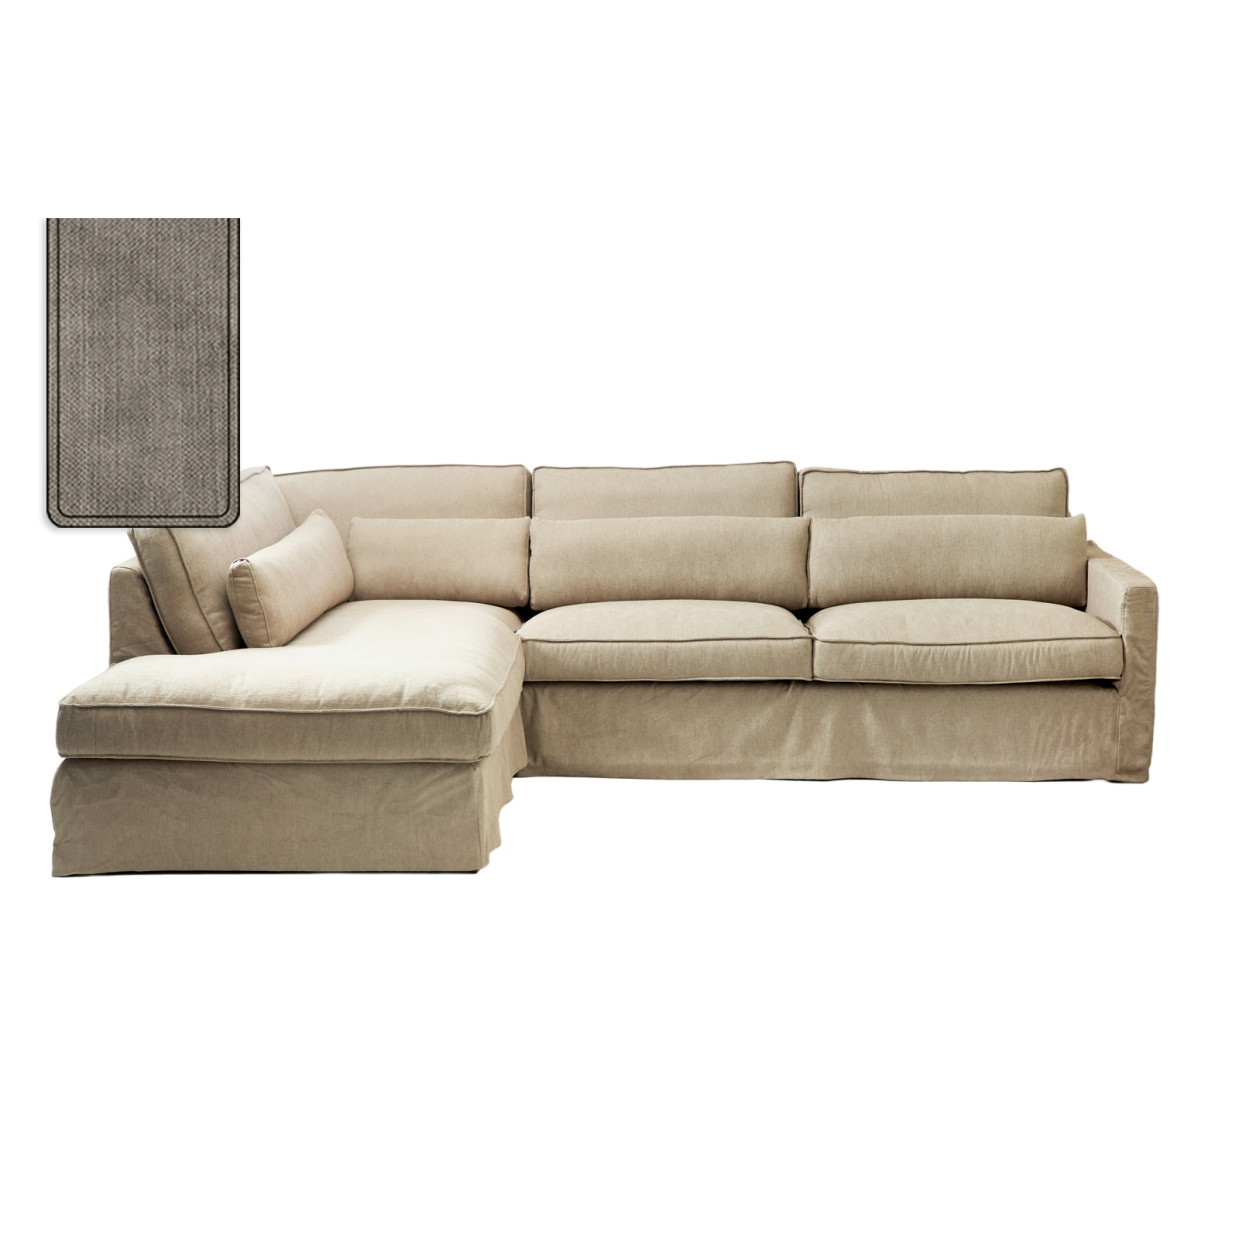 Brompton Cross Corner Sofa Chaise Longue Left Washed Cotton Stone / Rivièra Maison